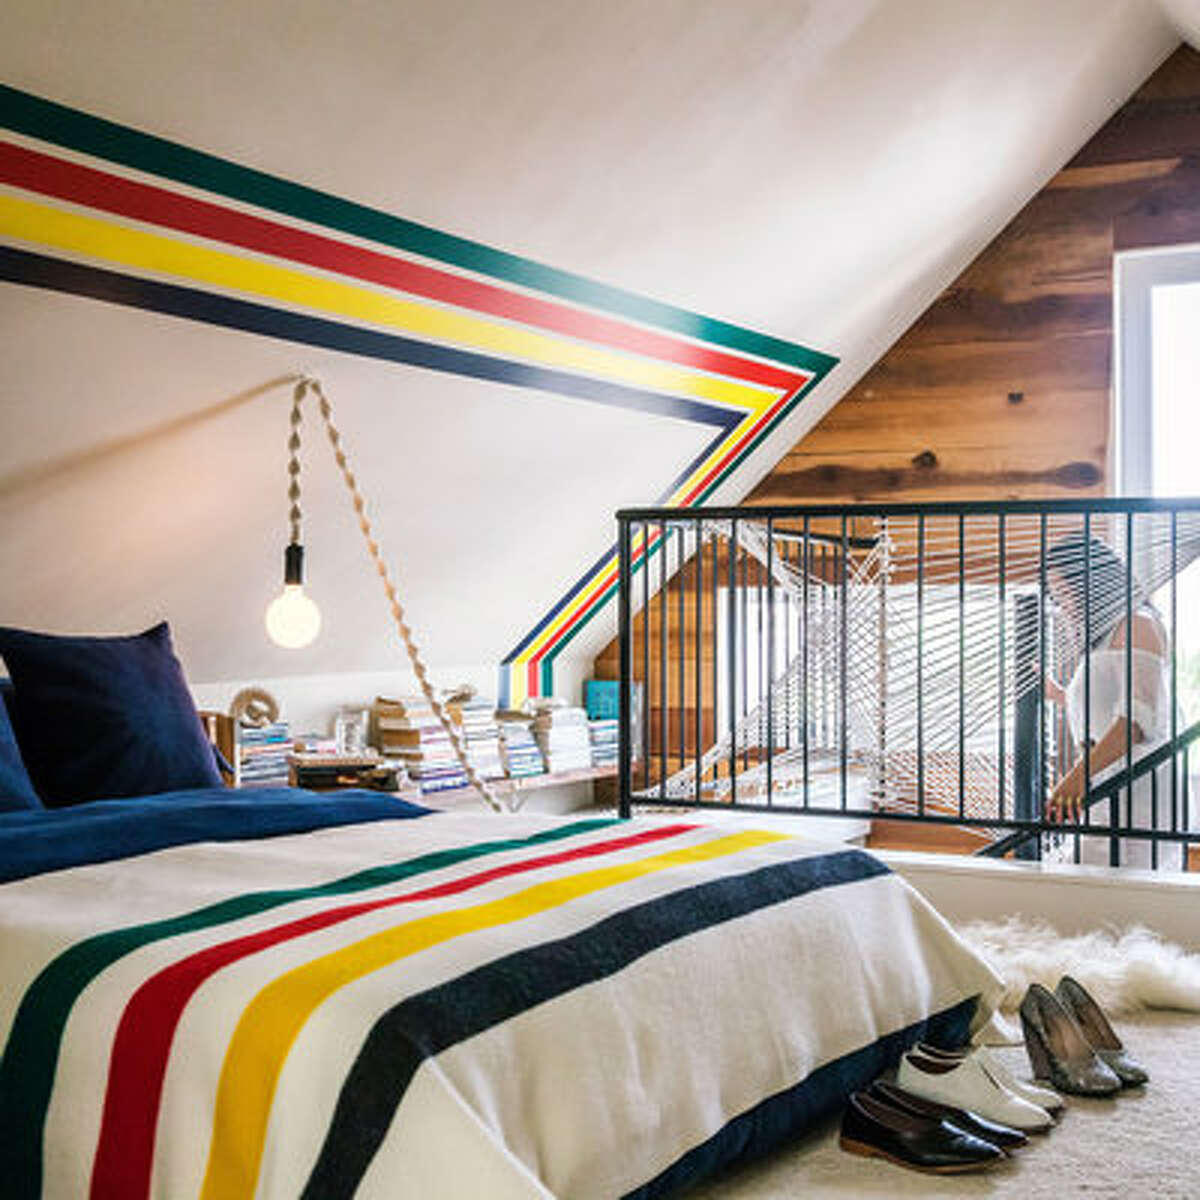 Play with paint For this attic bedroom, artist Windy Chien and her husband took inspiration from a classic Pendleton blanket (from $199) to create a preppy, punchy wall treatment. To get the look on your own wall, use a laser level to measure and tape the top and bottom borders, 1 foot at a time; then start painting, beginning with the darkest color, allowing paint to dry between coats.